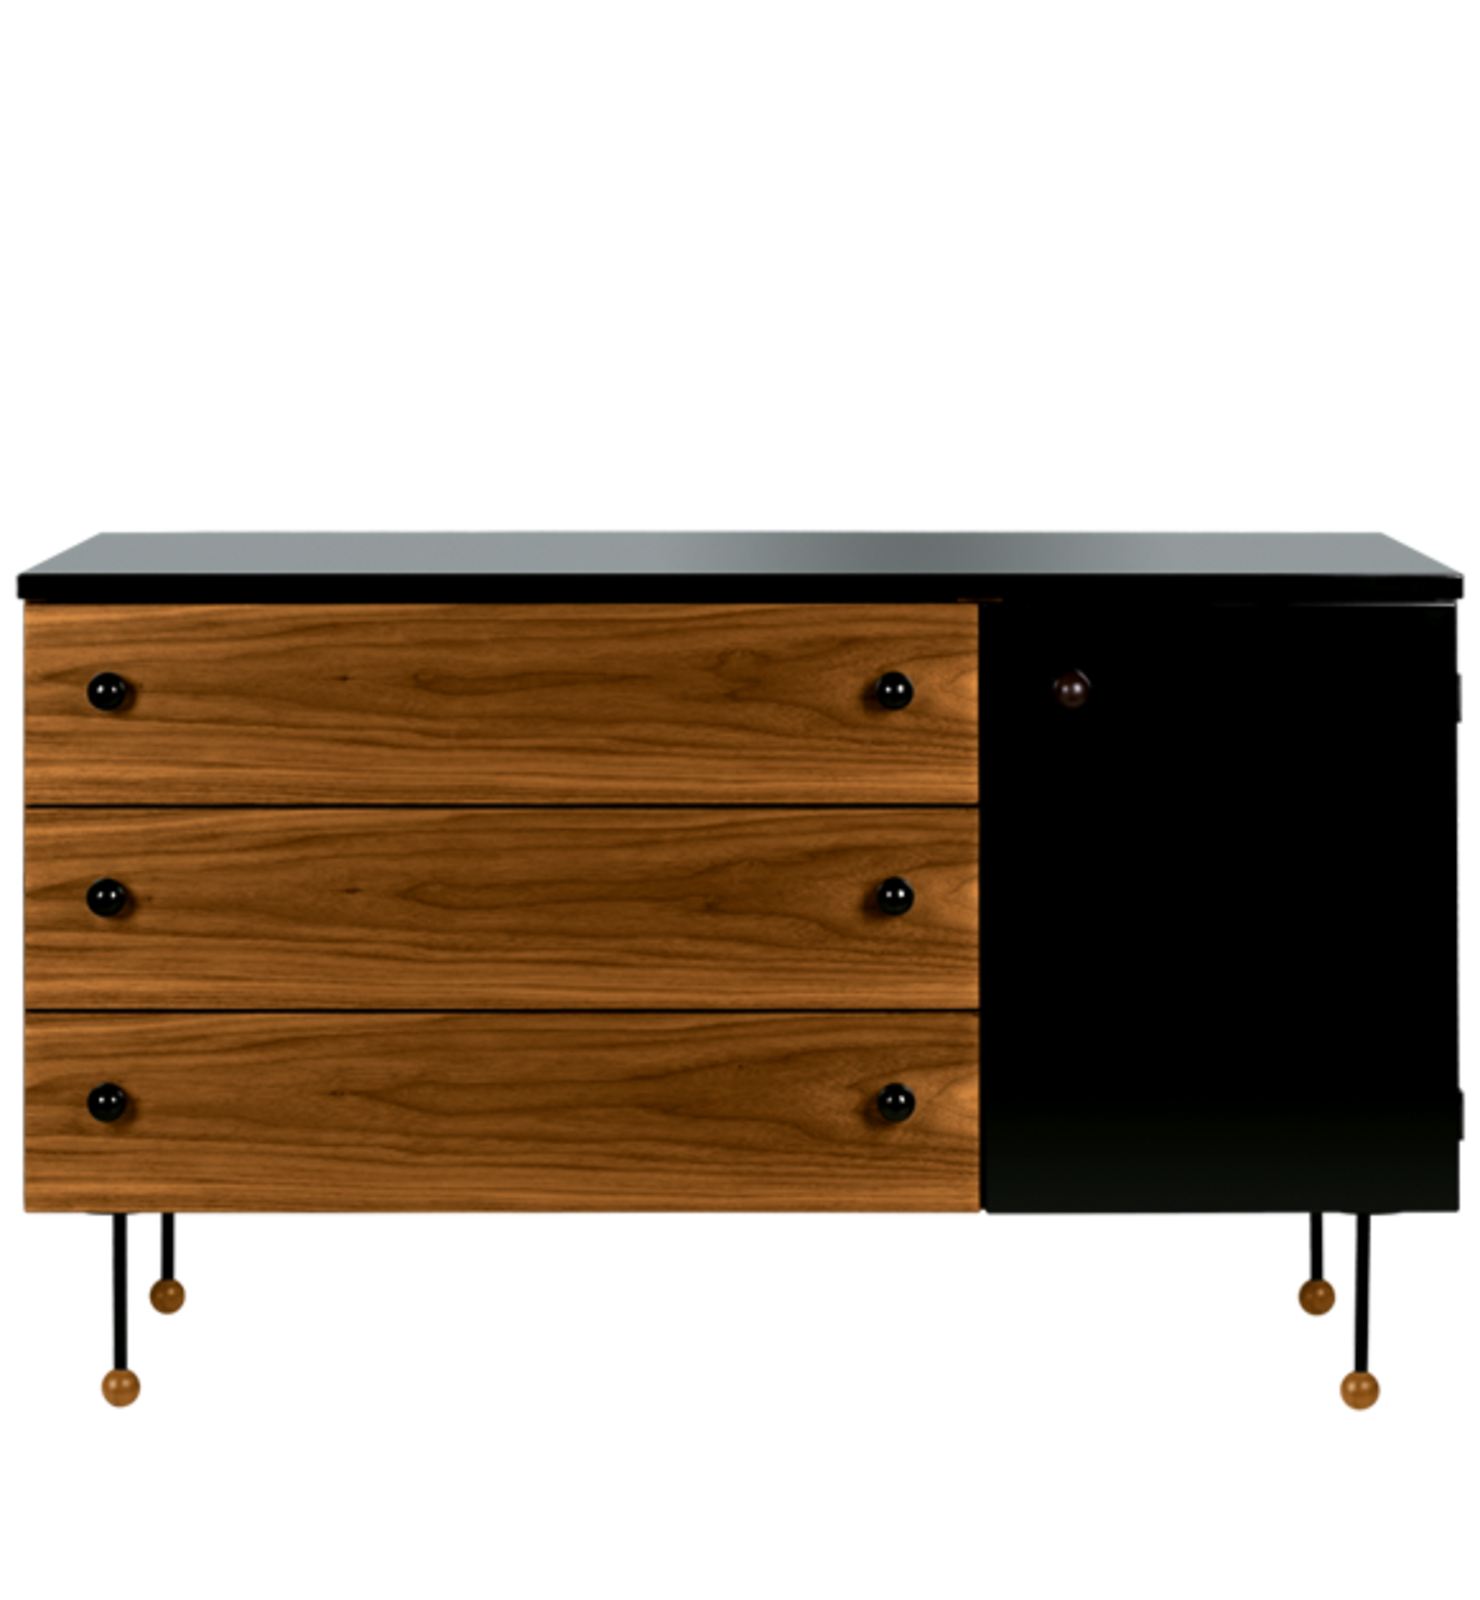 Grossman's 1952 collection, which included a desk and three dressers was named 62-Series because the design was thought to be ten years ahead of its time. Courtesy of Gubi.